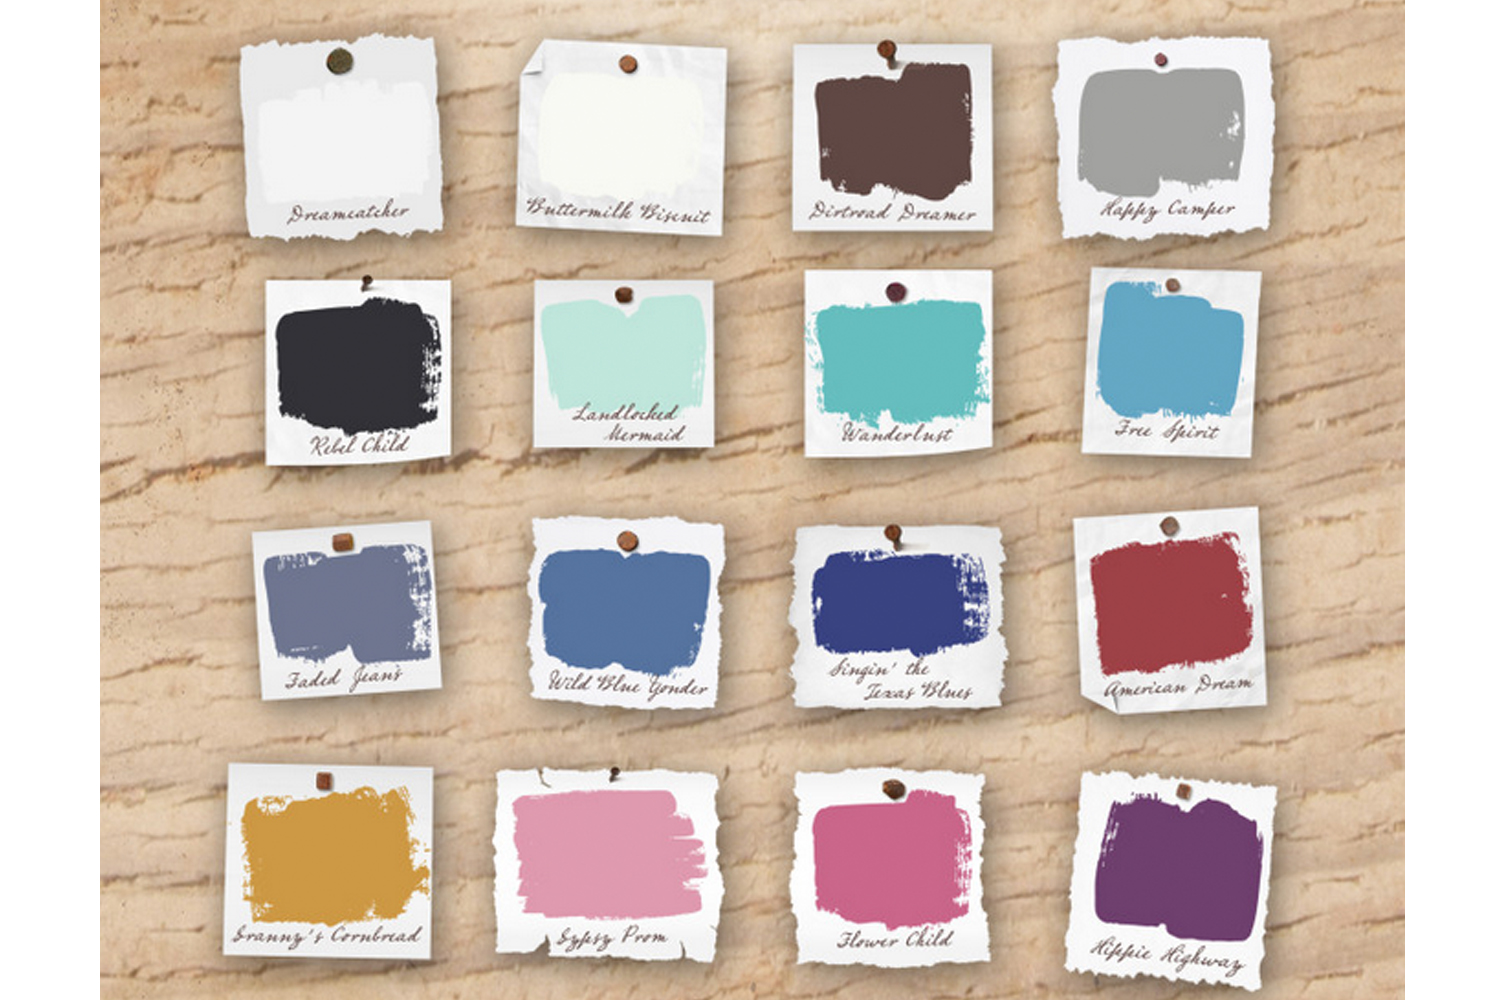 DIY-ers Rejoice: The Junk Gypsy Paint Collection Will Paint Just About Any Surface